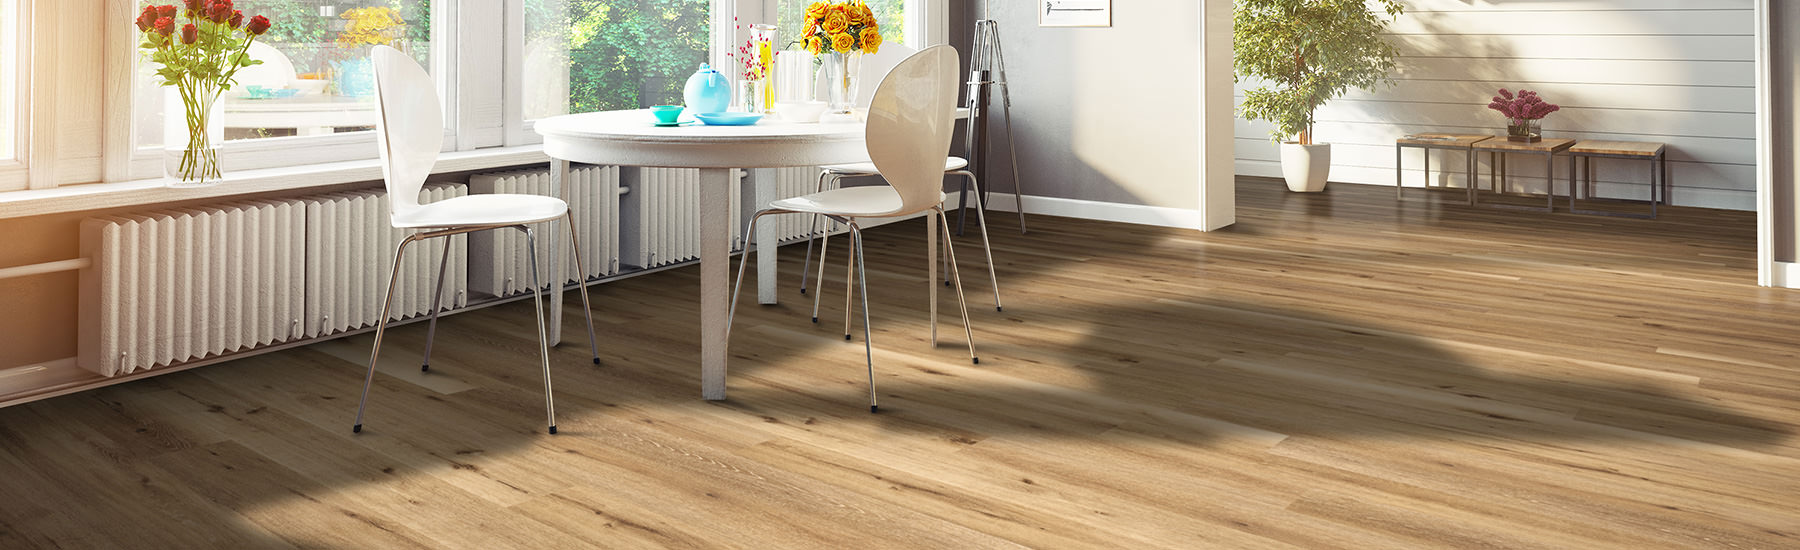 Vinyl Planks Aged Hickory Wide Click Flooring Cali Bamboo